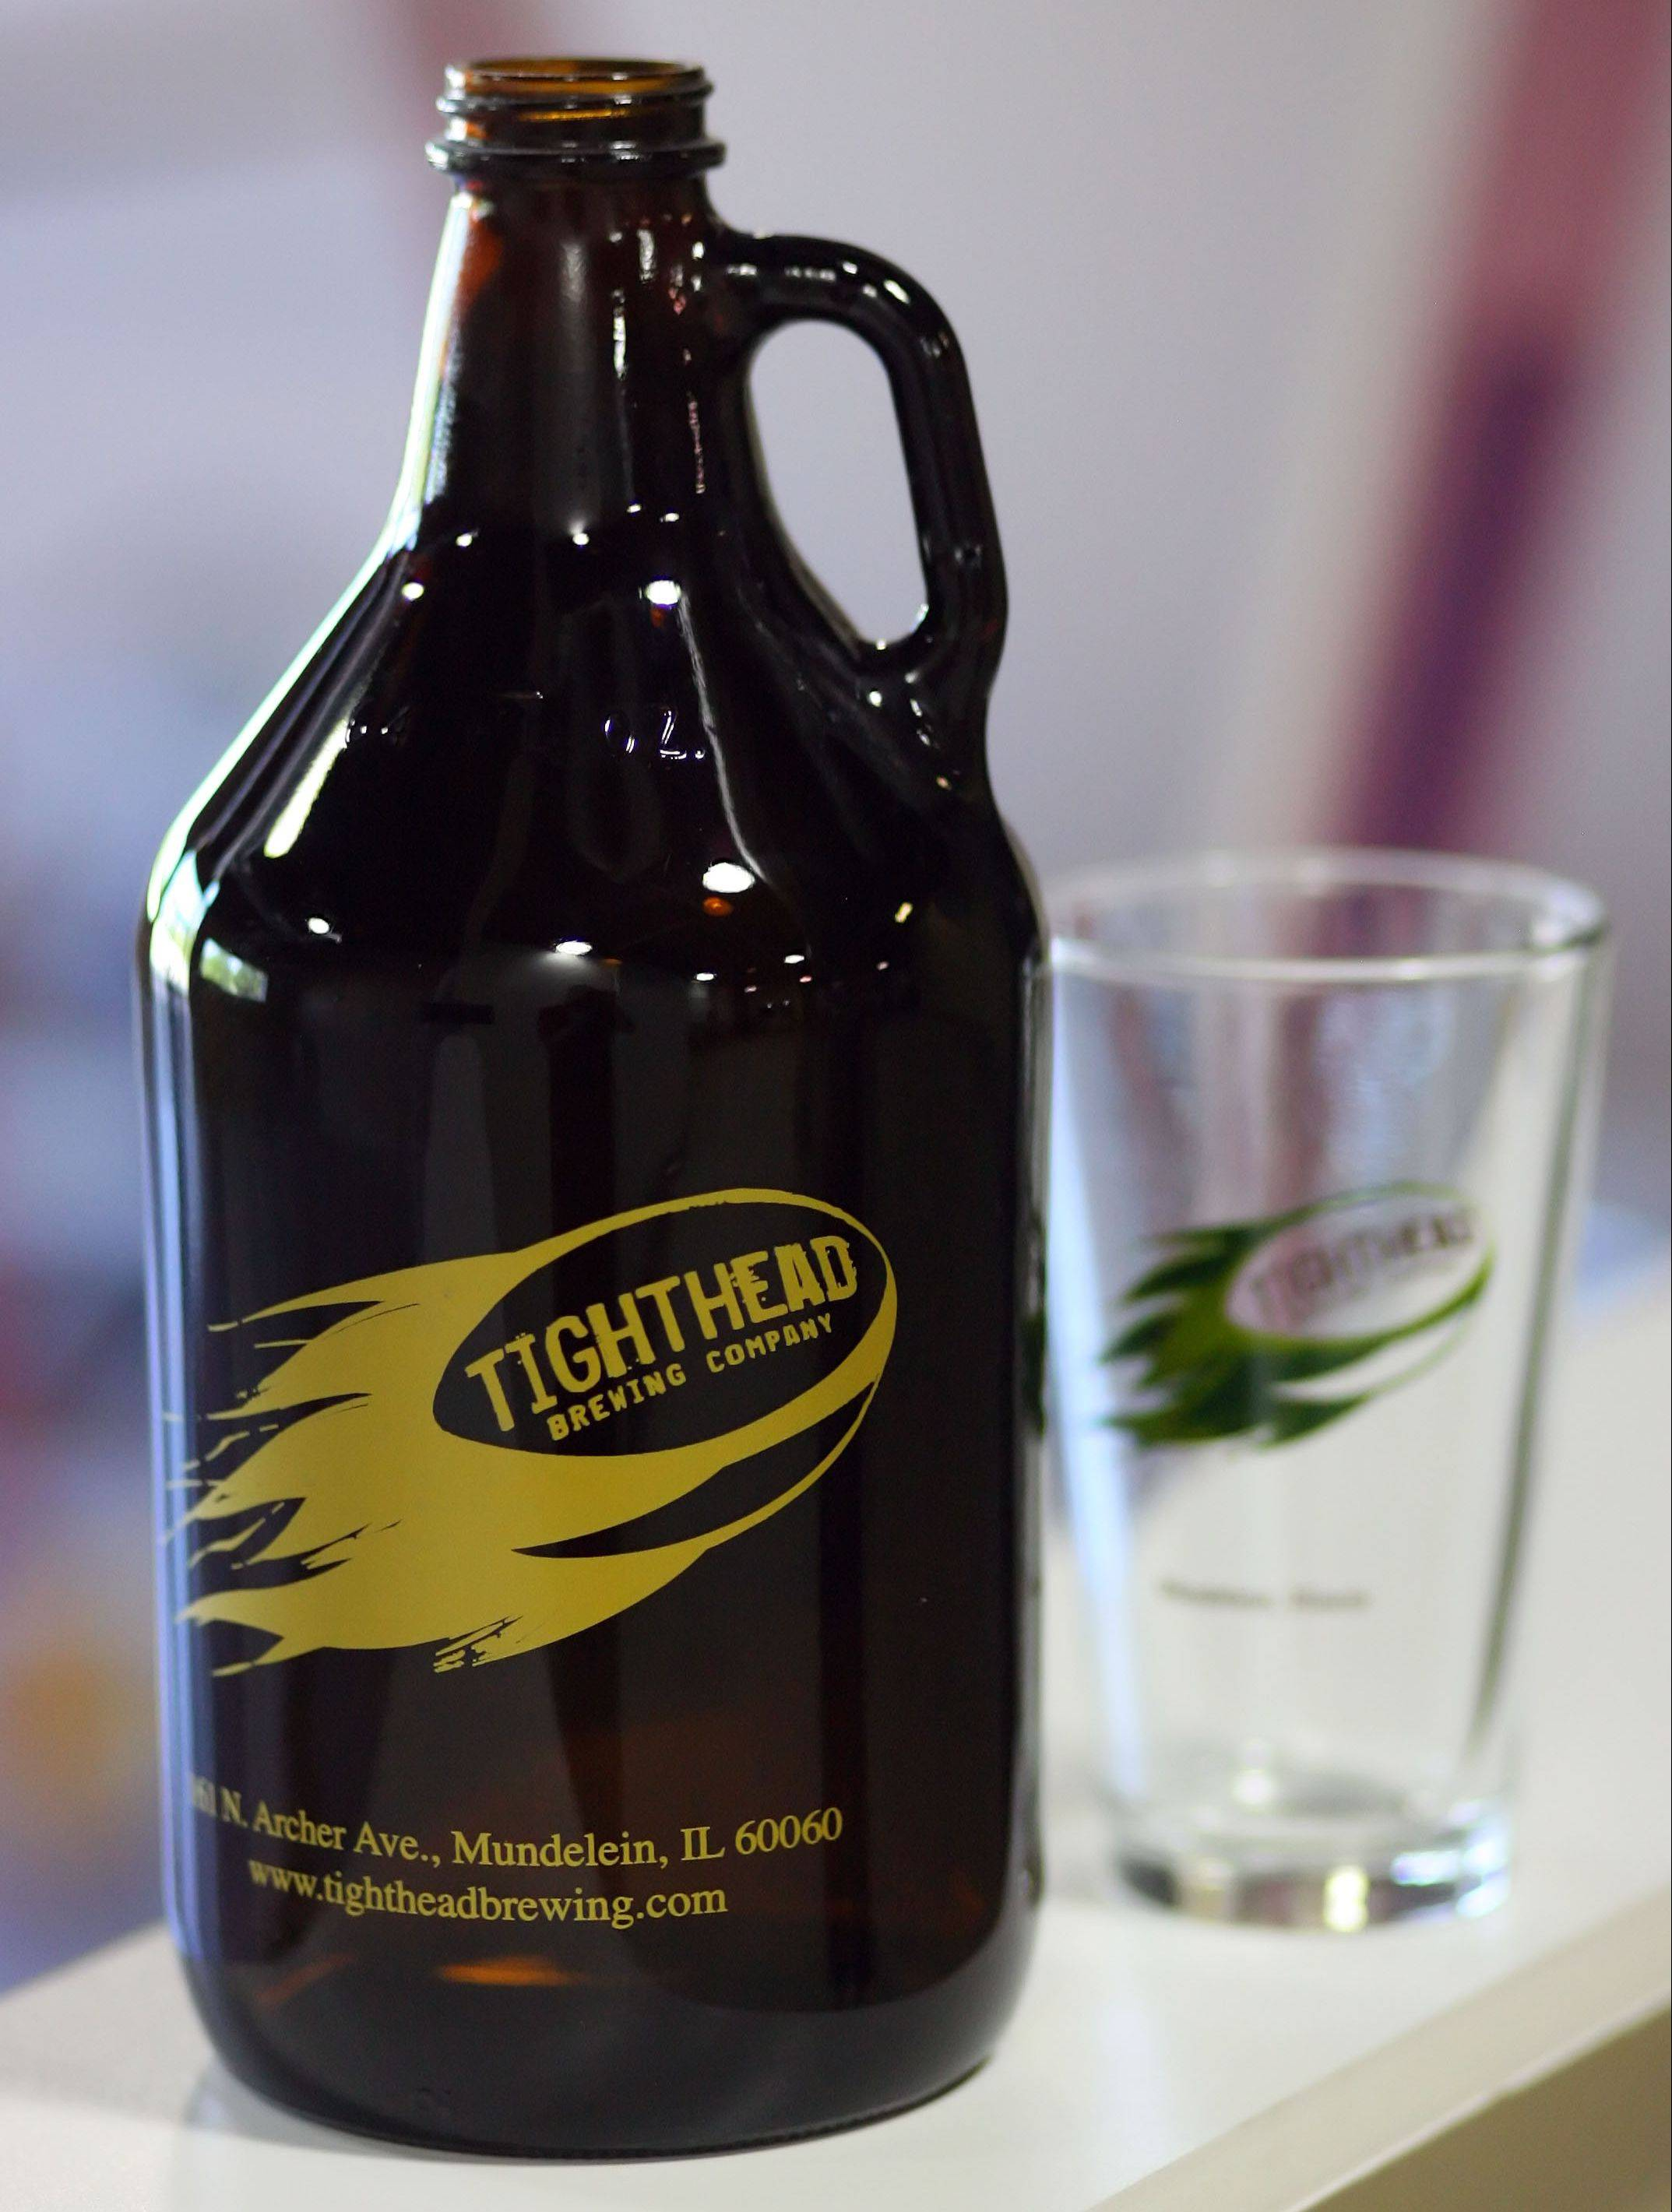 Tighthead Brewing, near the Metra station in Mundelein, will sell 64-ounce jugs of beer known as growlers.